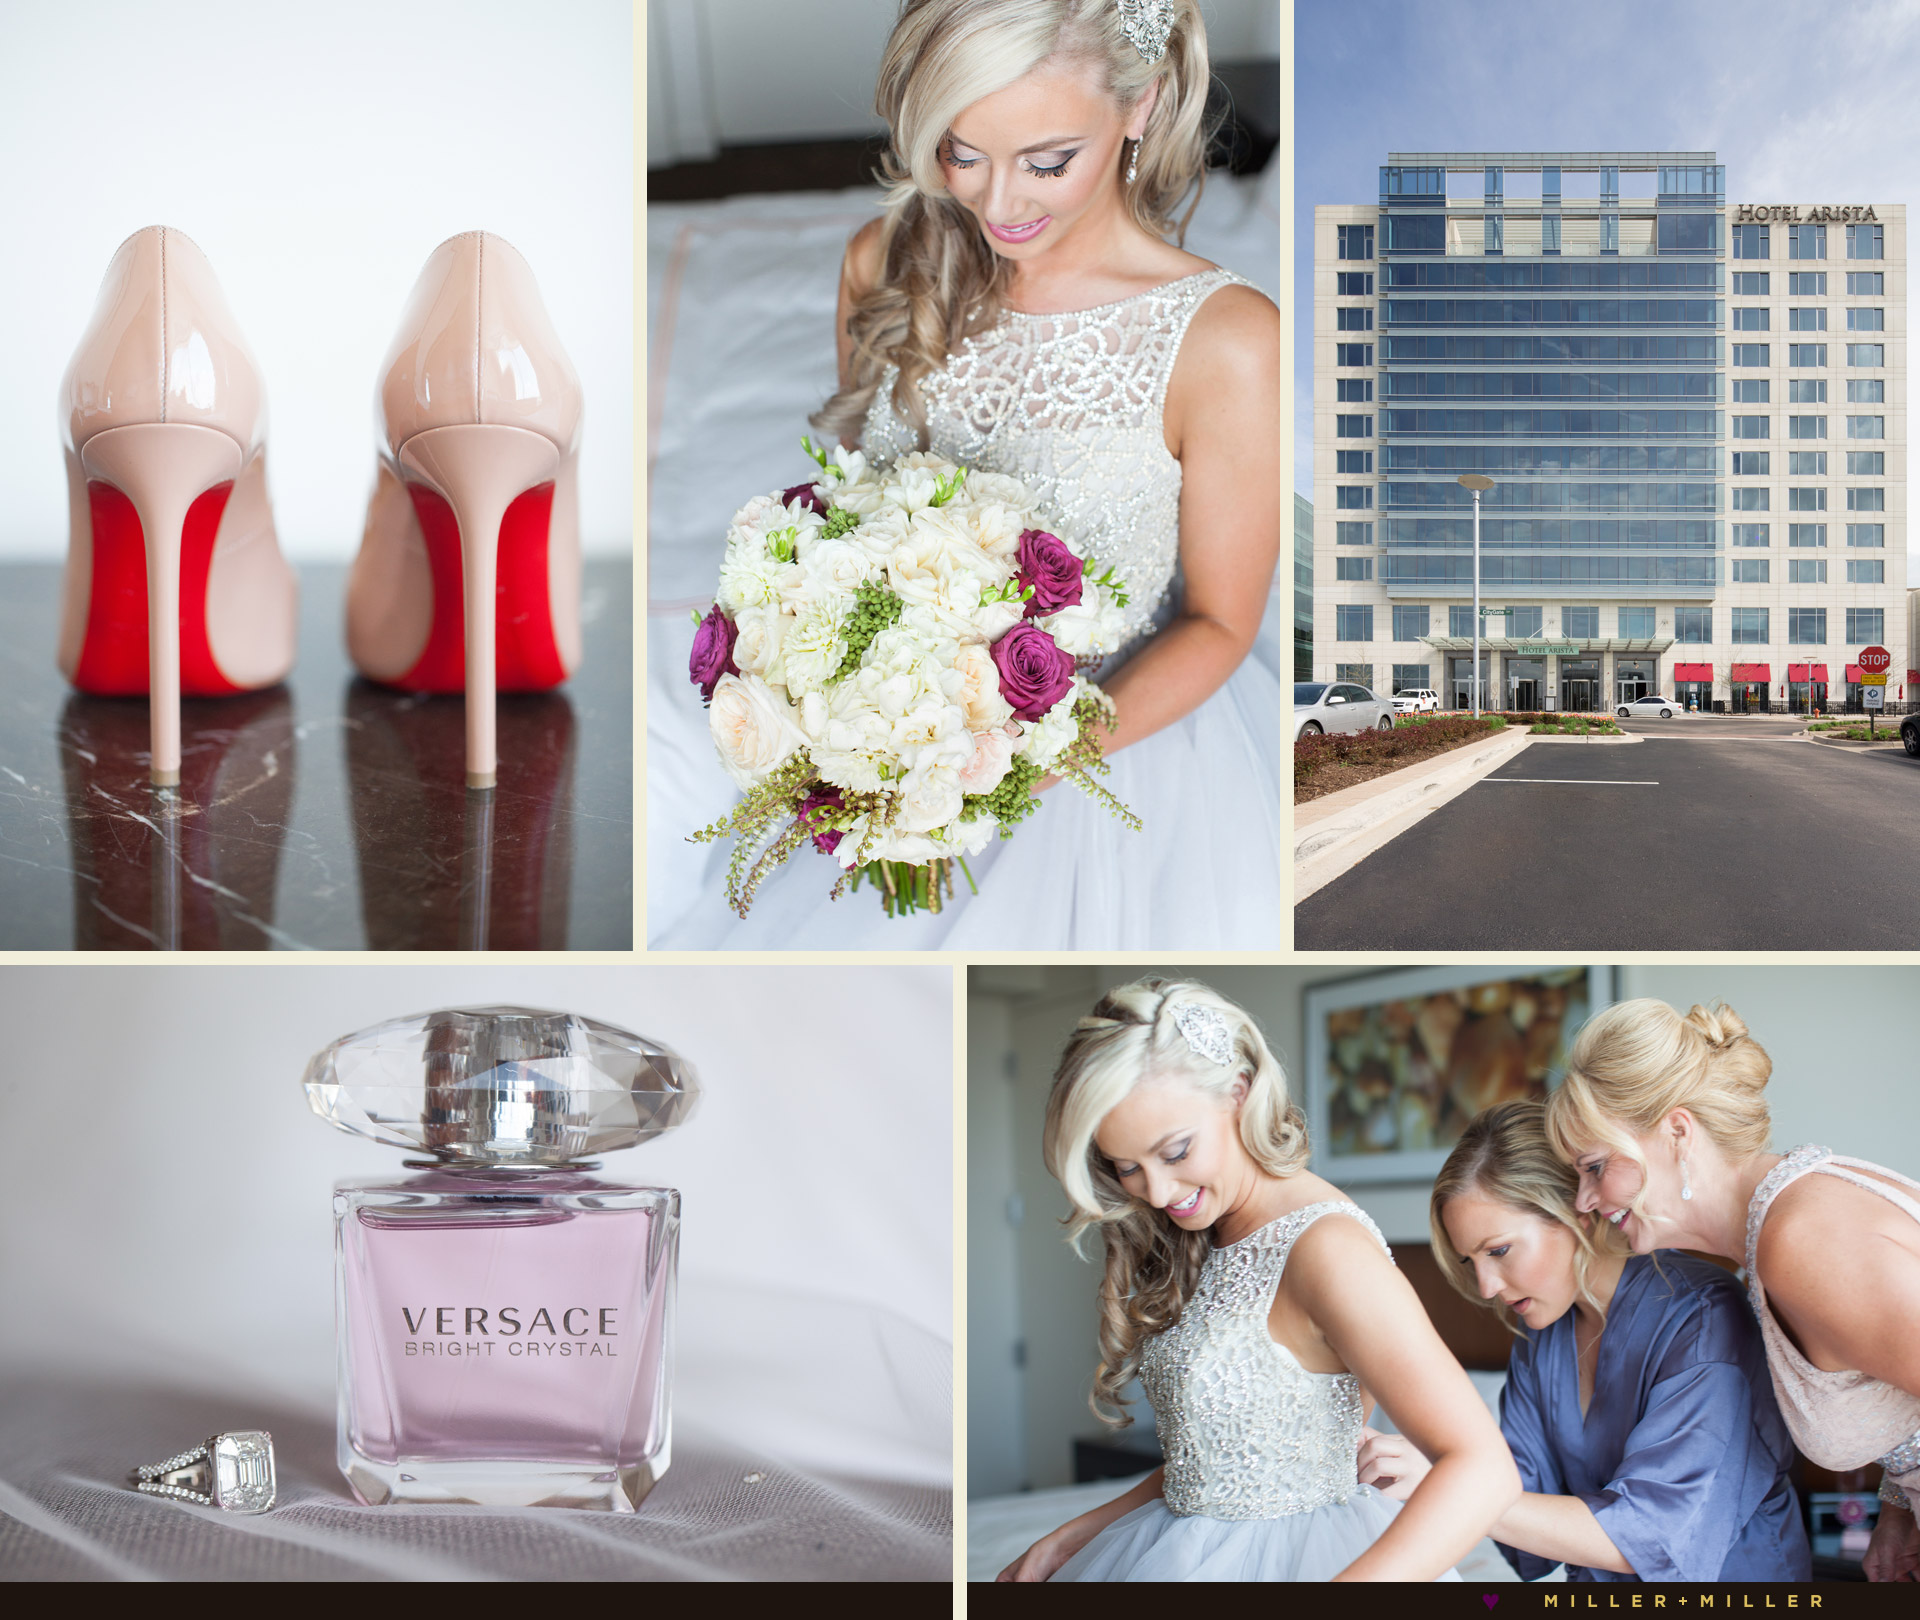 hotel-arista-wedding-pictures